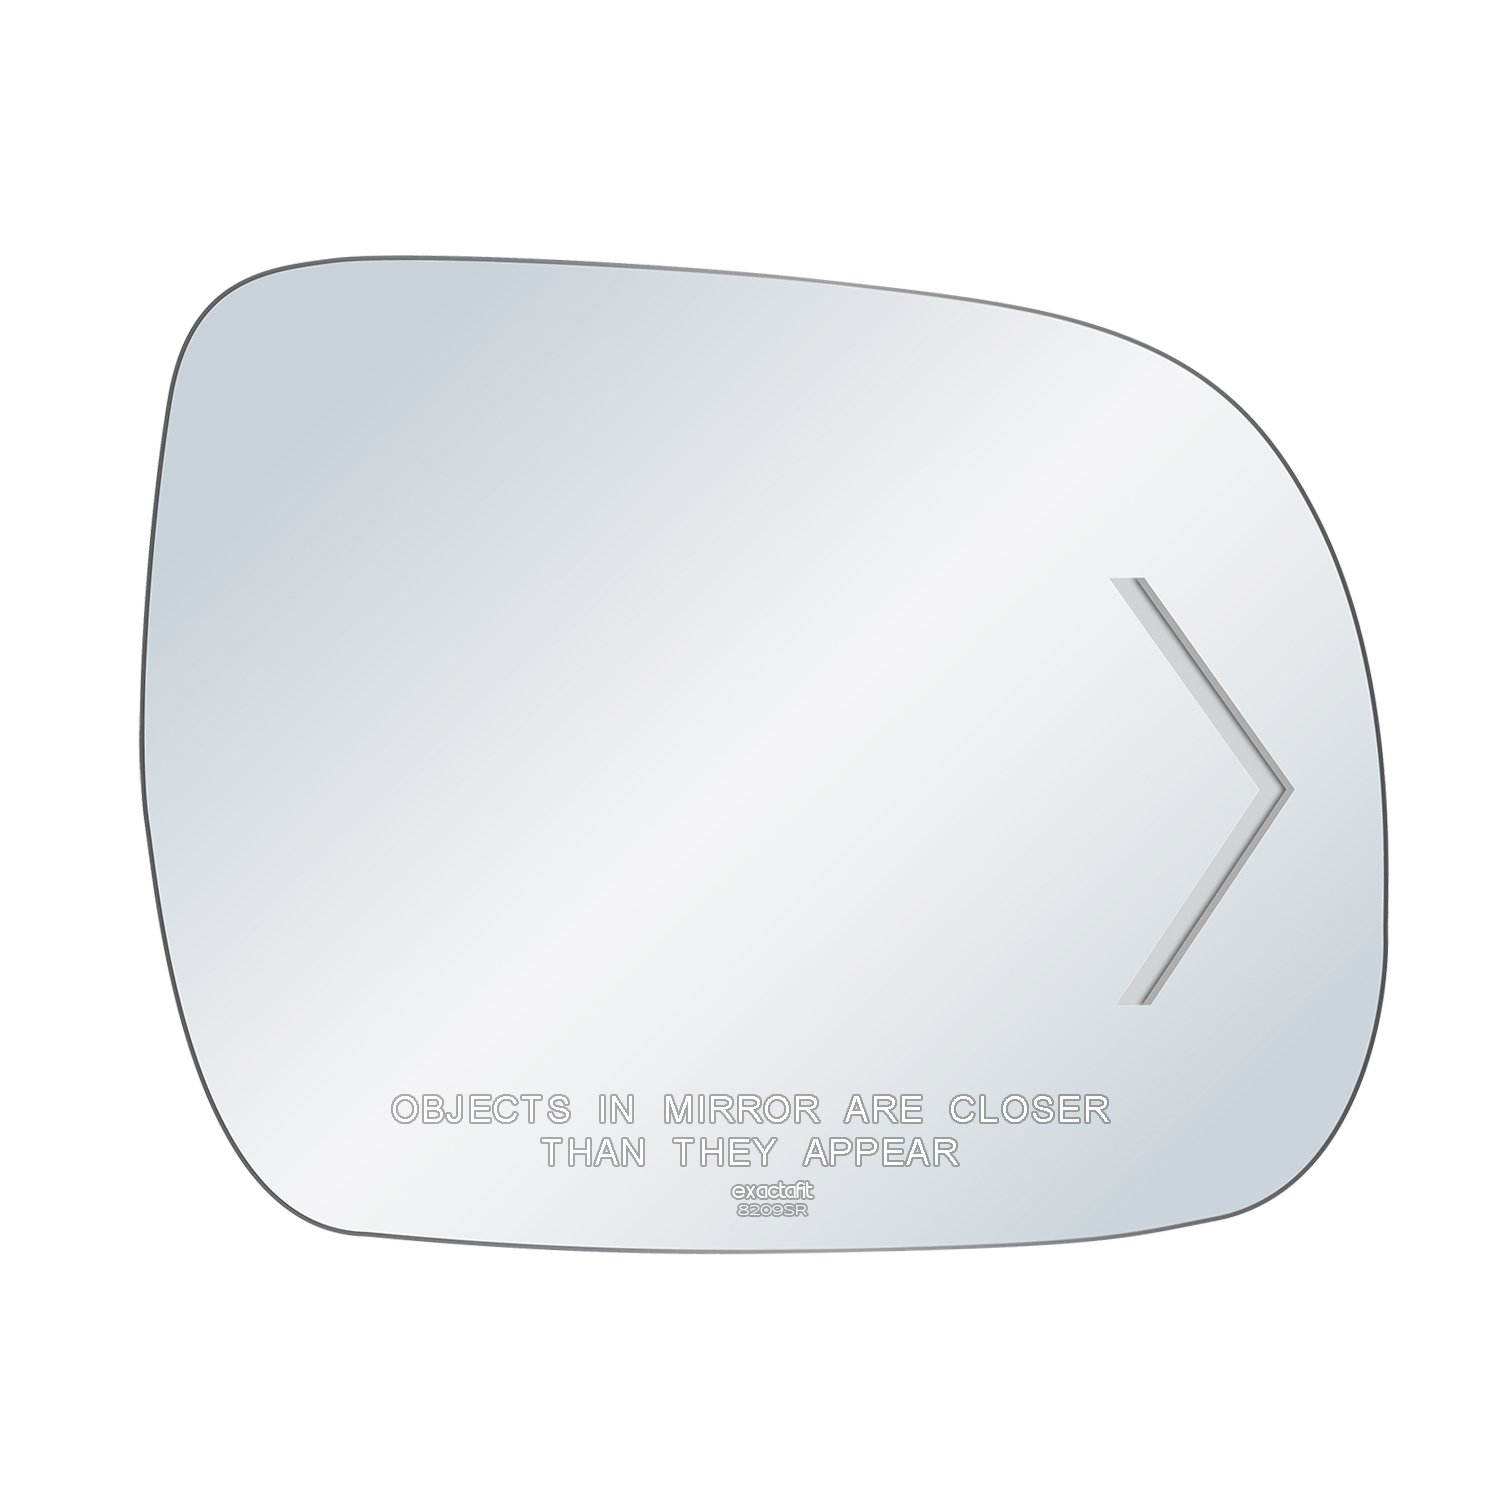 exactafit 8209SR Replacement Passenger Right Side Power Mirror Glass with Signal Cut-Out Convex Lens fits 2006-2010 Toyota Sienna by Rugged TUFF